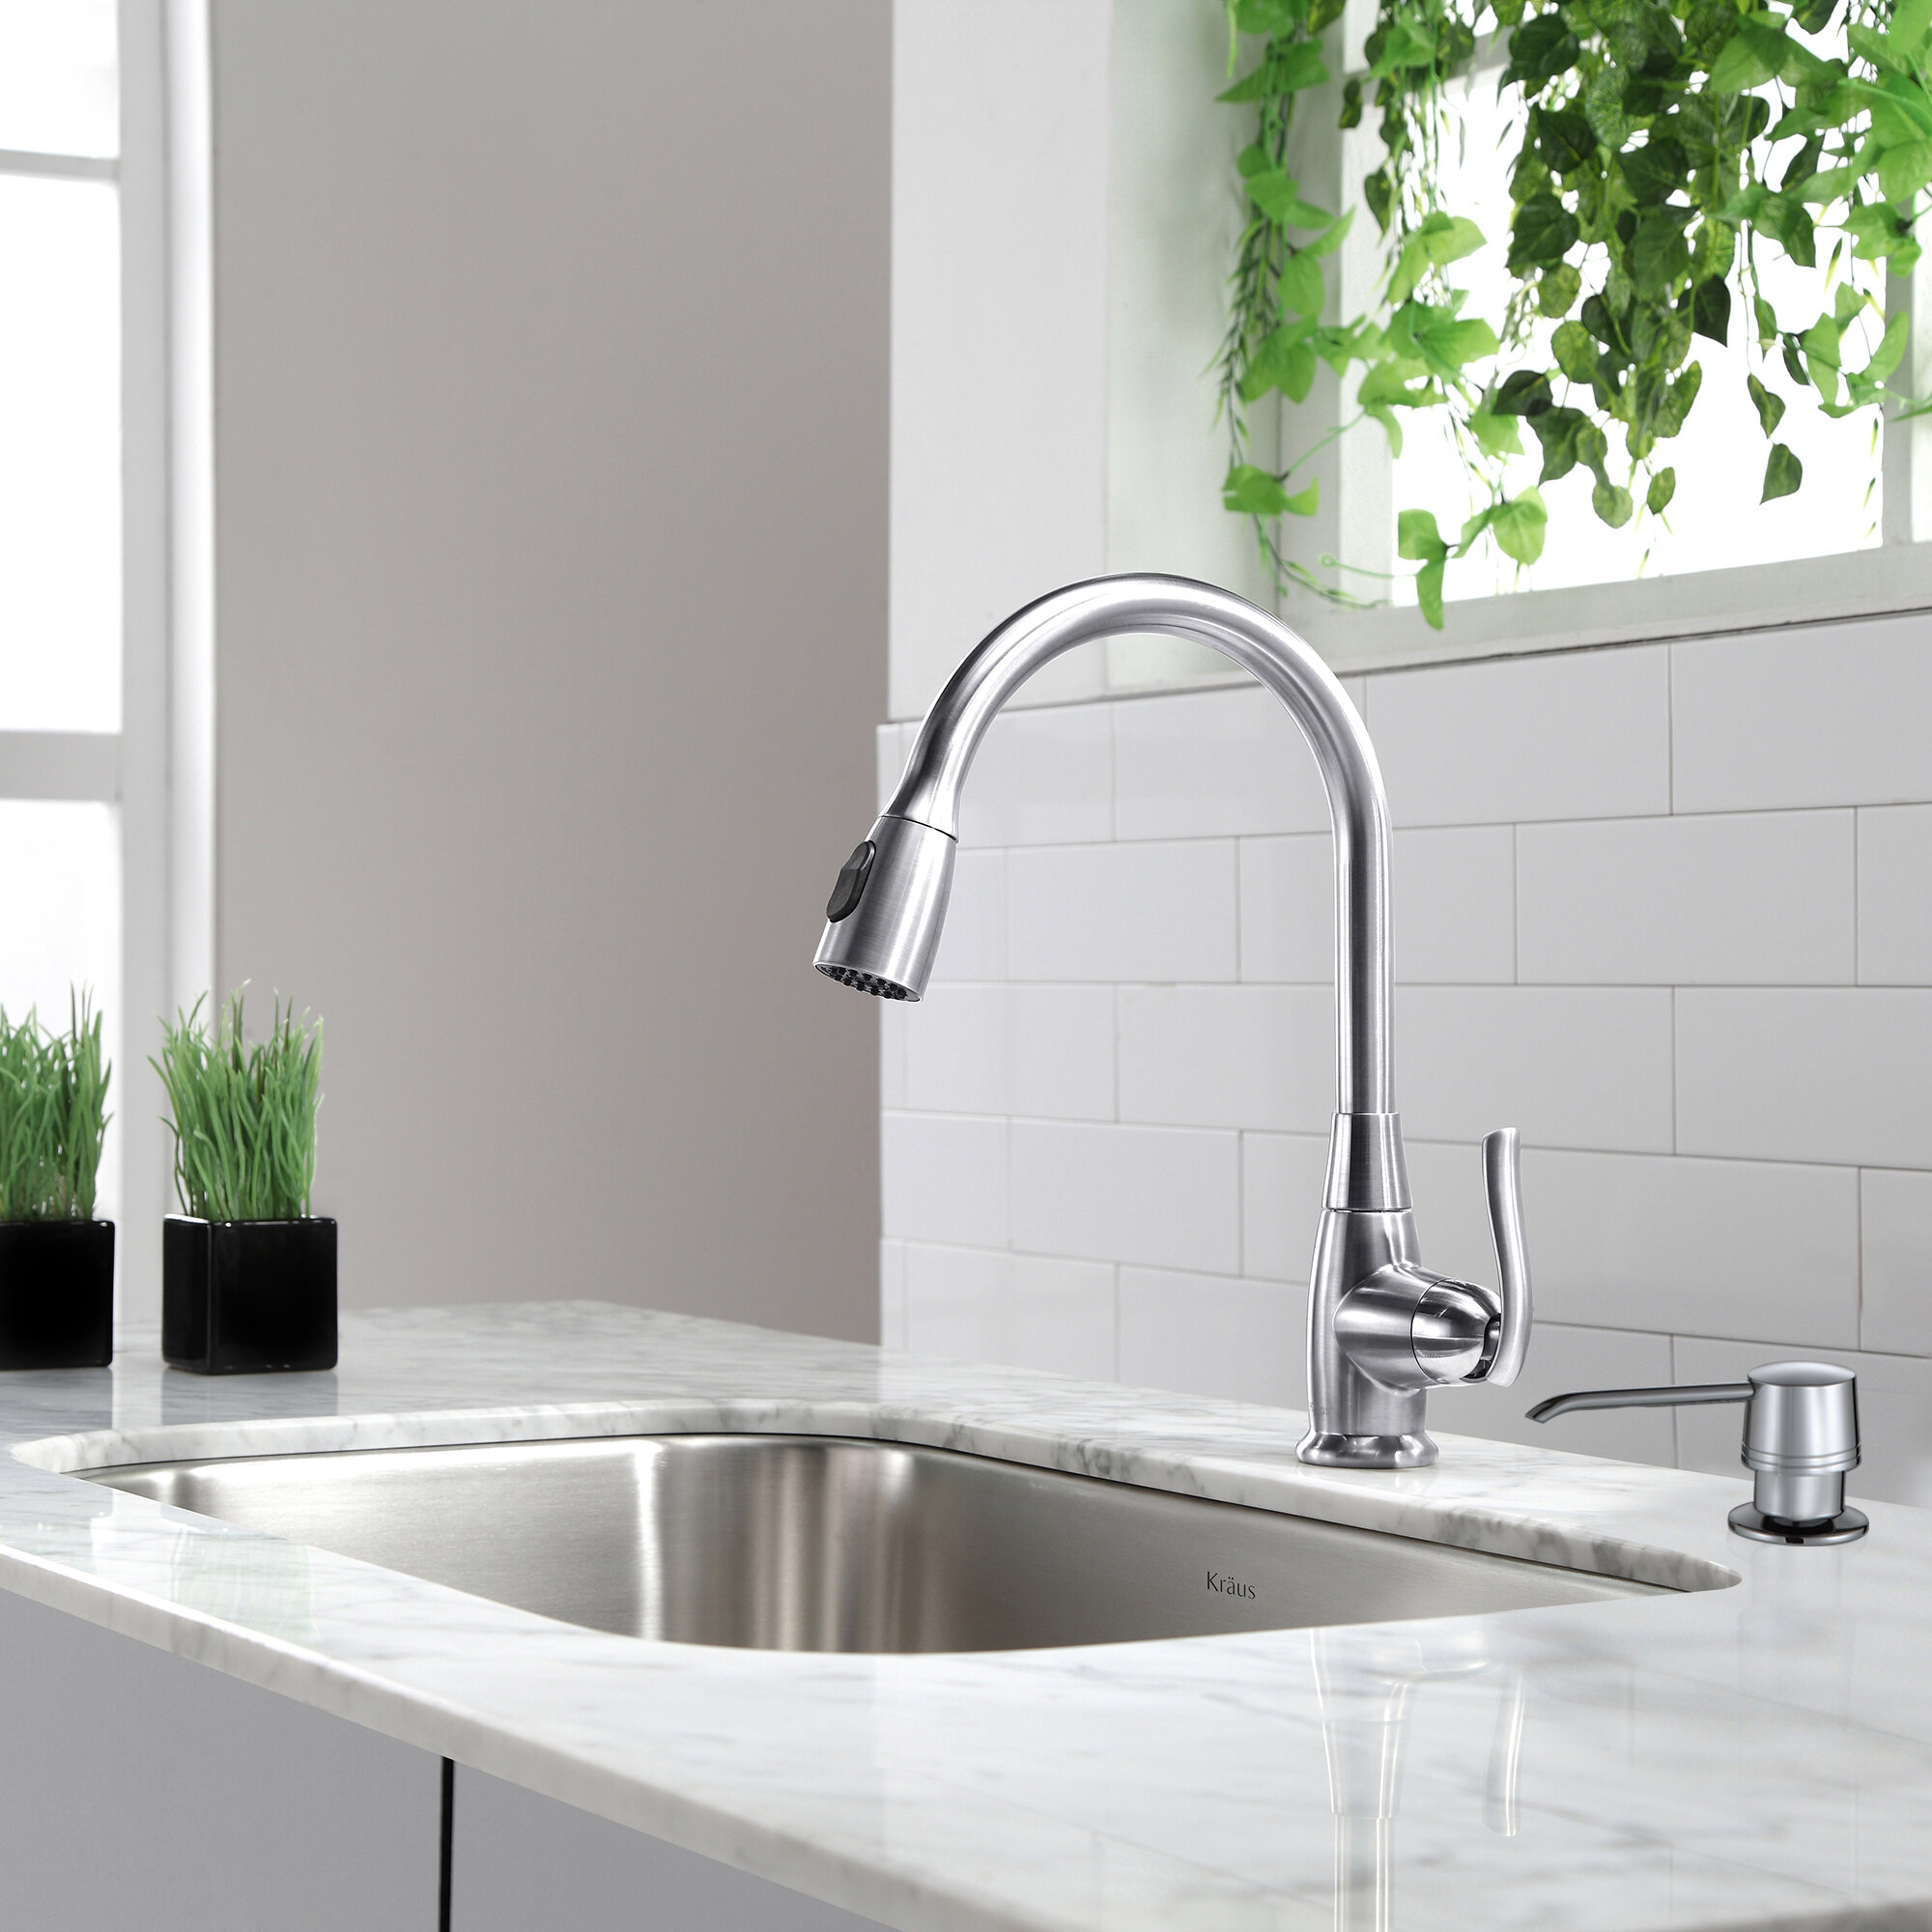 portsmouth with kitchens faucet in chrome polished faucets spray arch side high arc sidespray handle kitchen